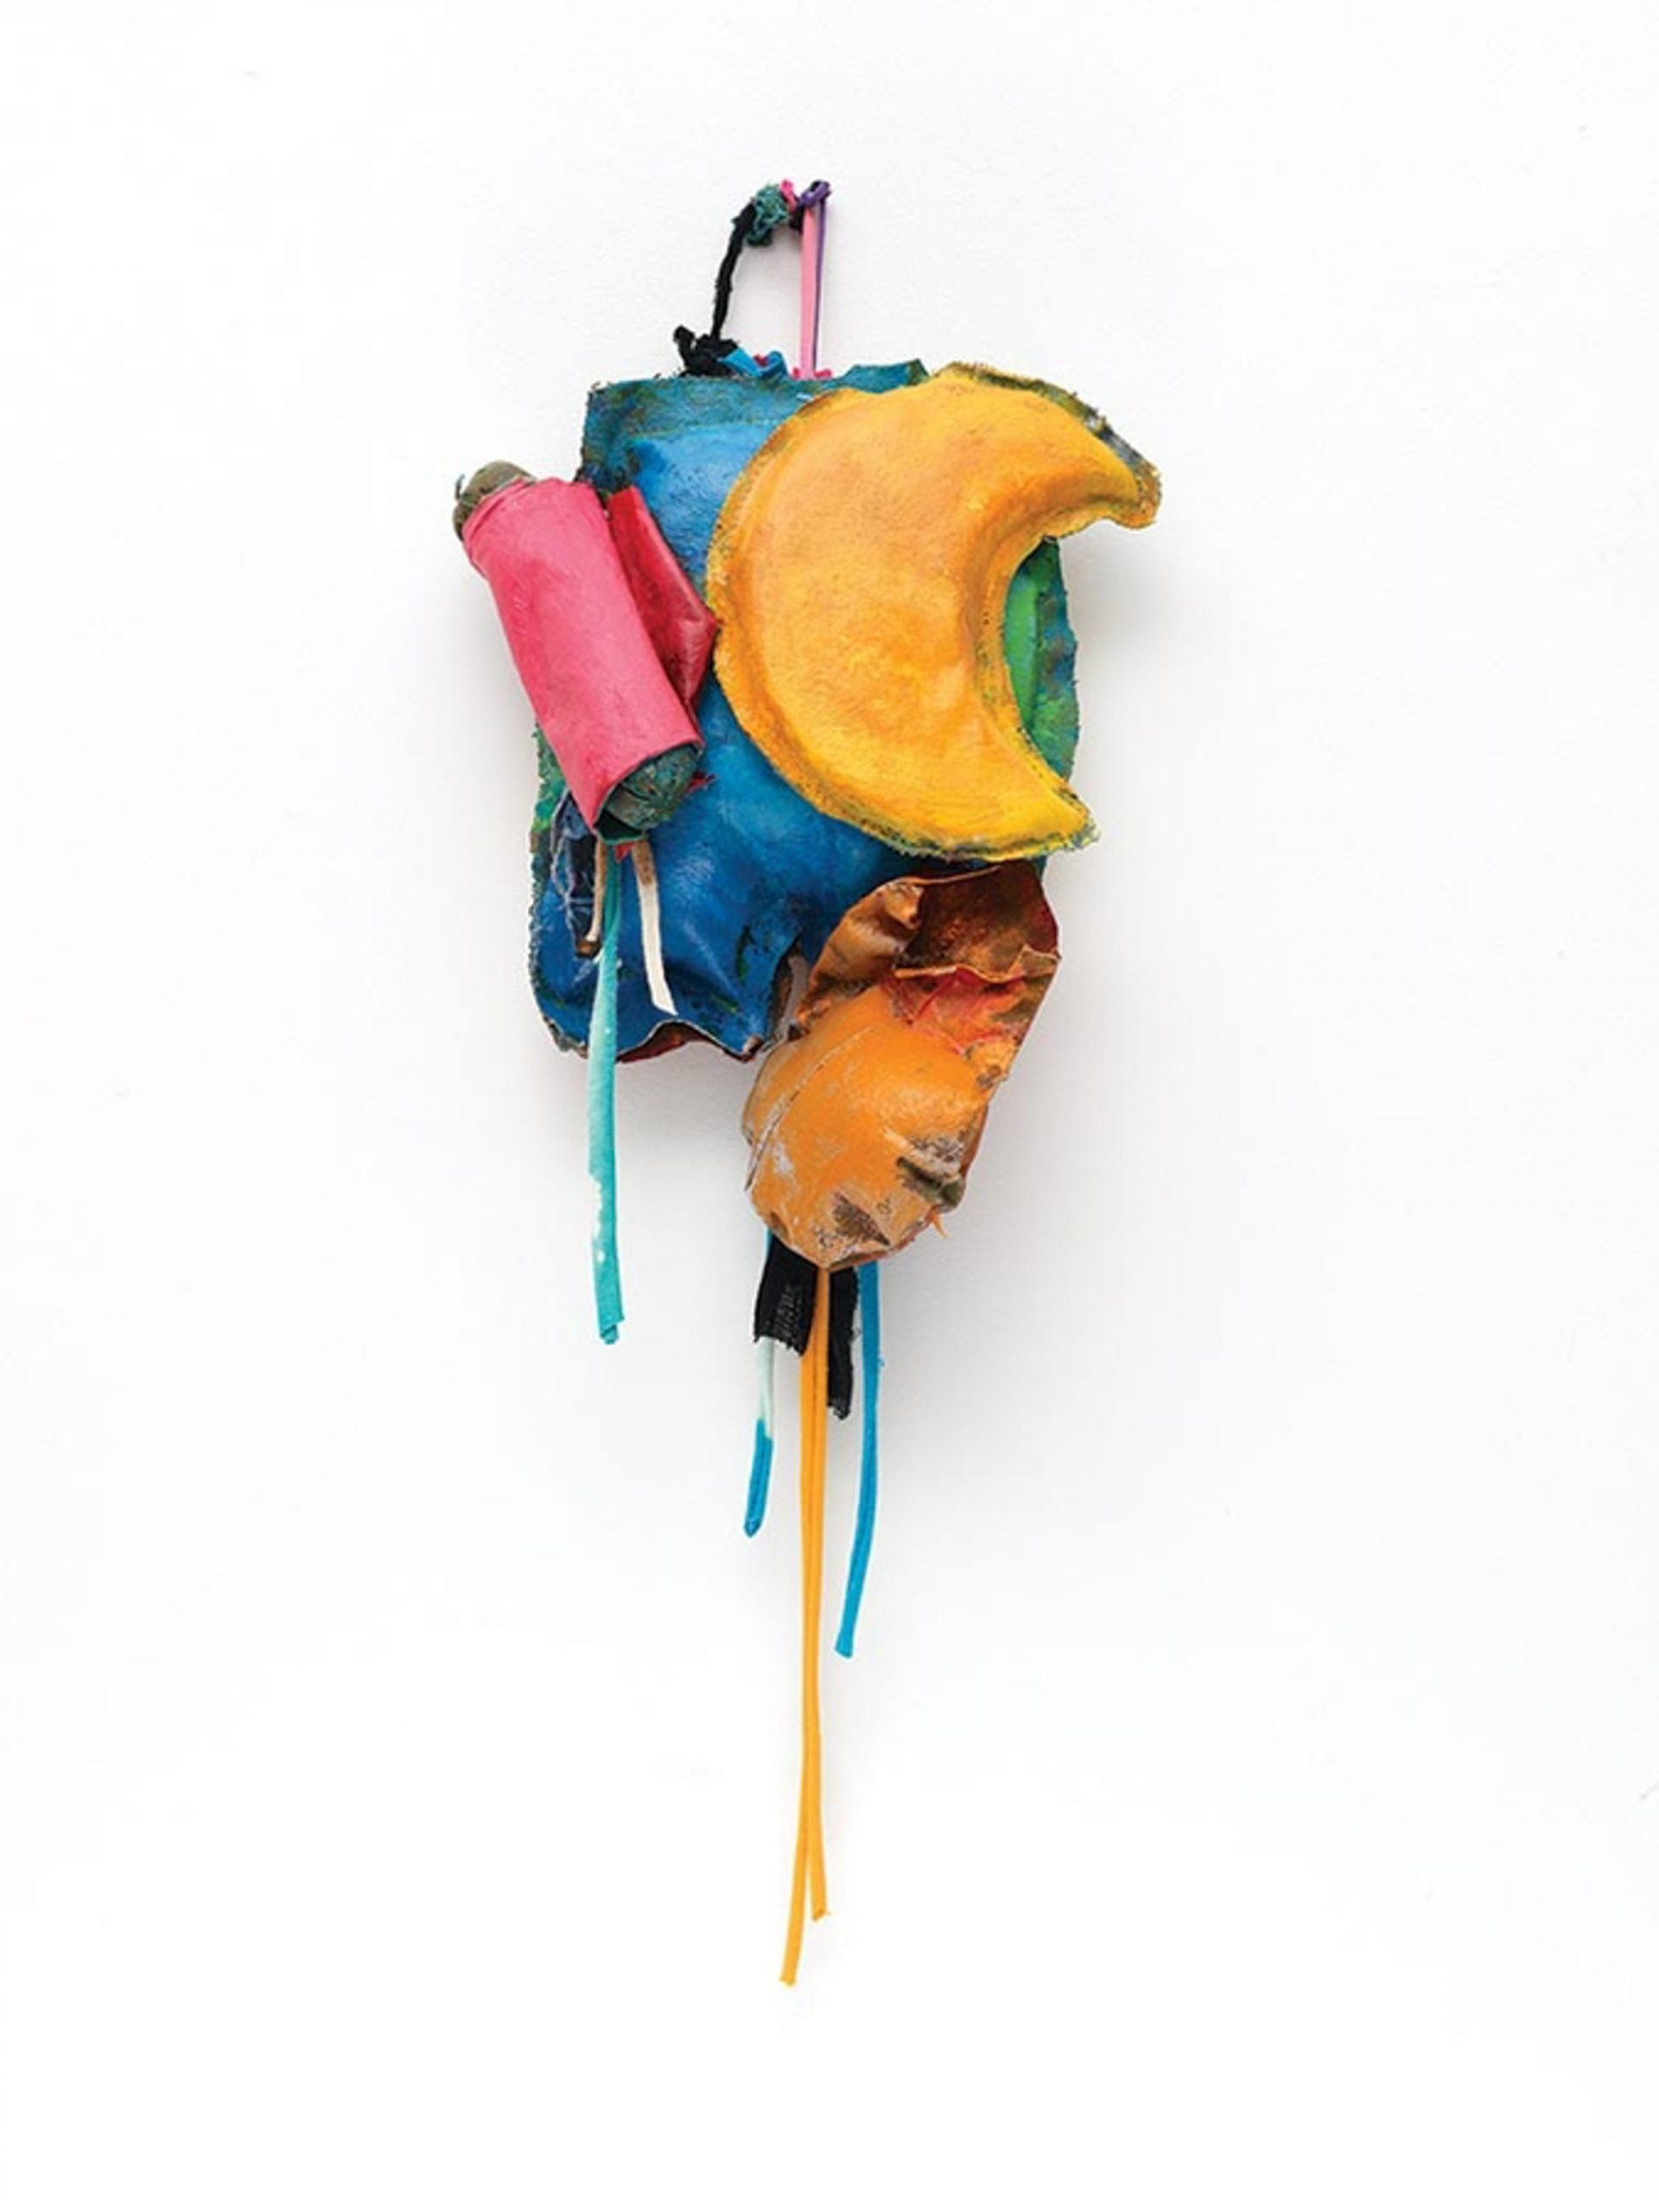 John Outterbridge, Rag and Bag Idiom IV, 2012, mixed mediums, 32 by 12 by 5¾ inches; at Art + Practice.